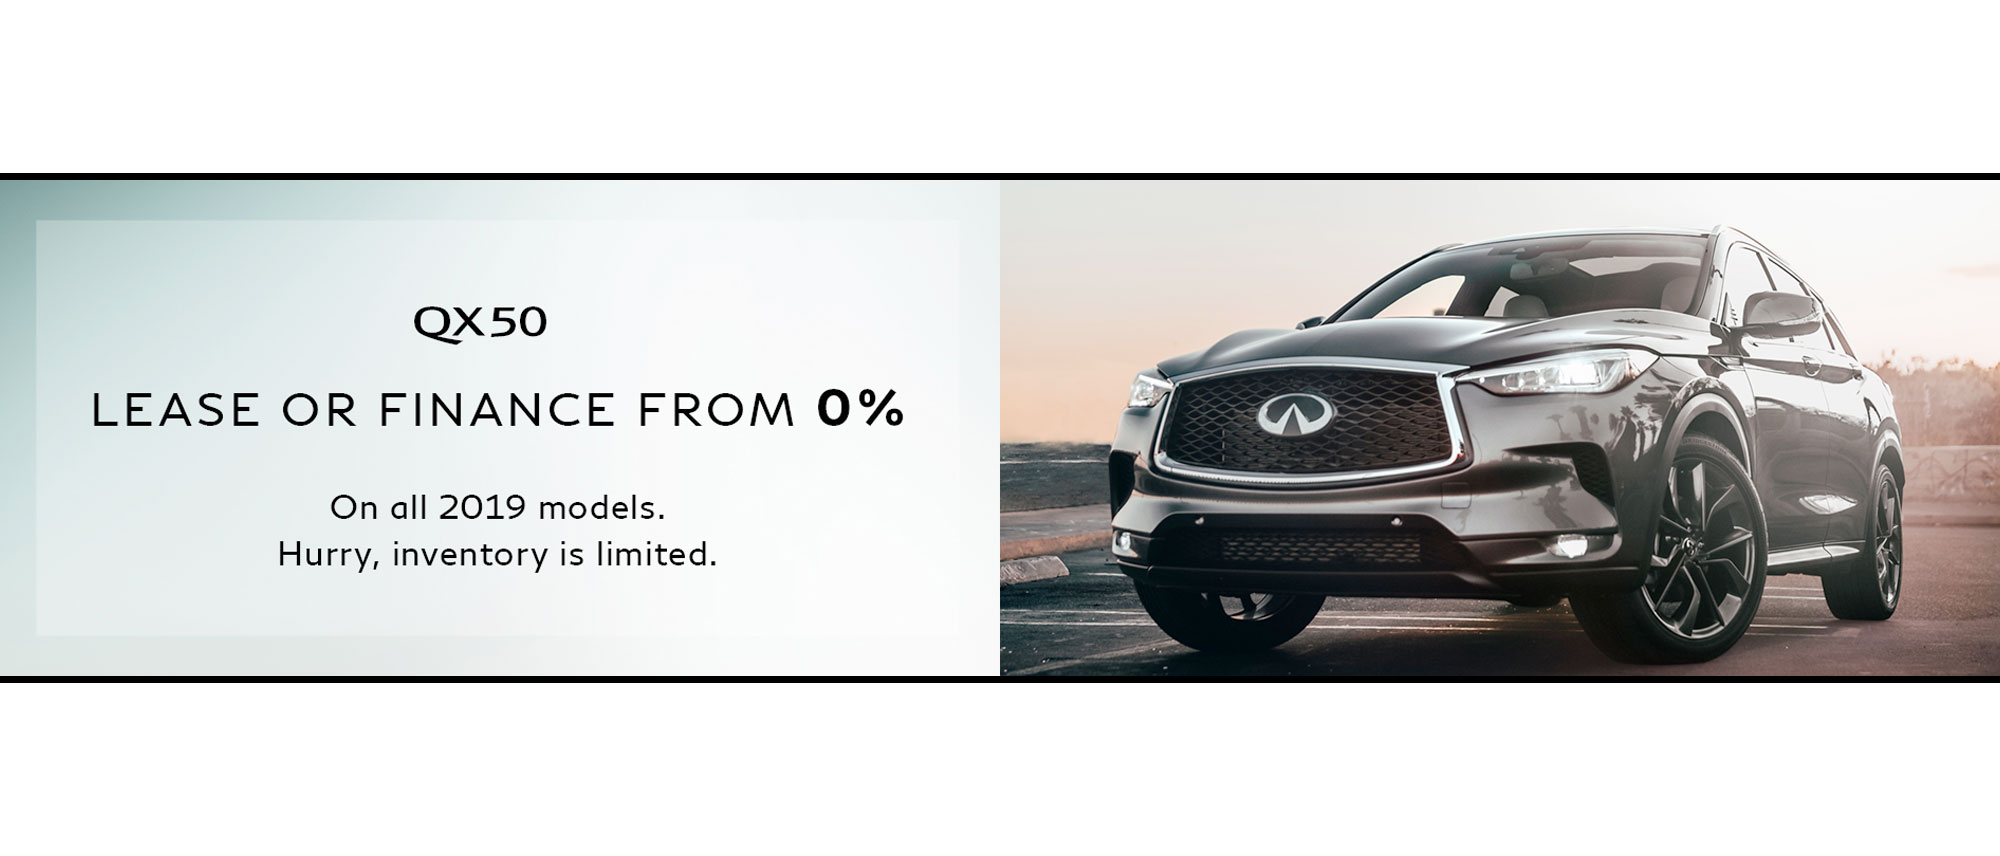 Infiniti of Richmond in Lower Mainland, Metro Vancouver, luxury car dealership